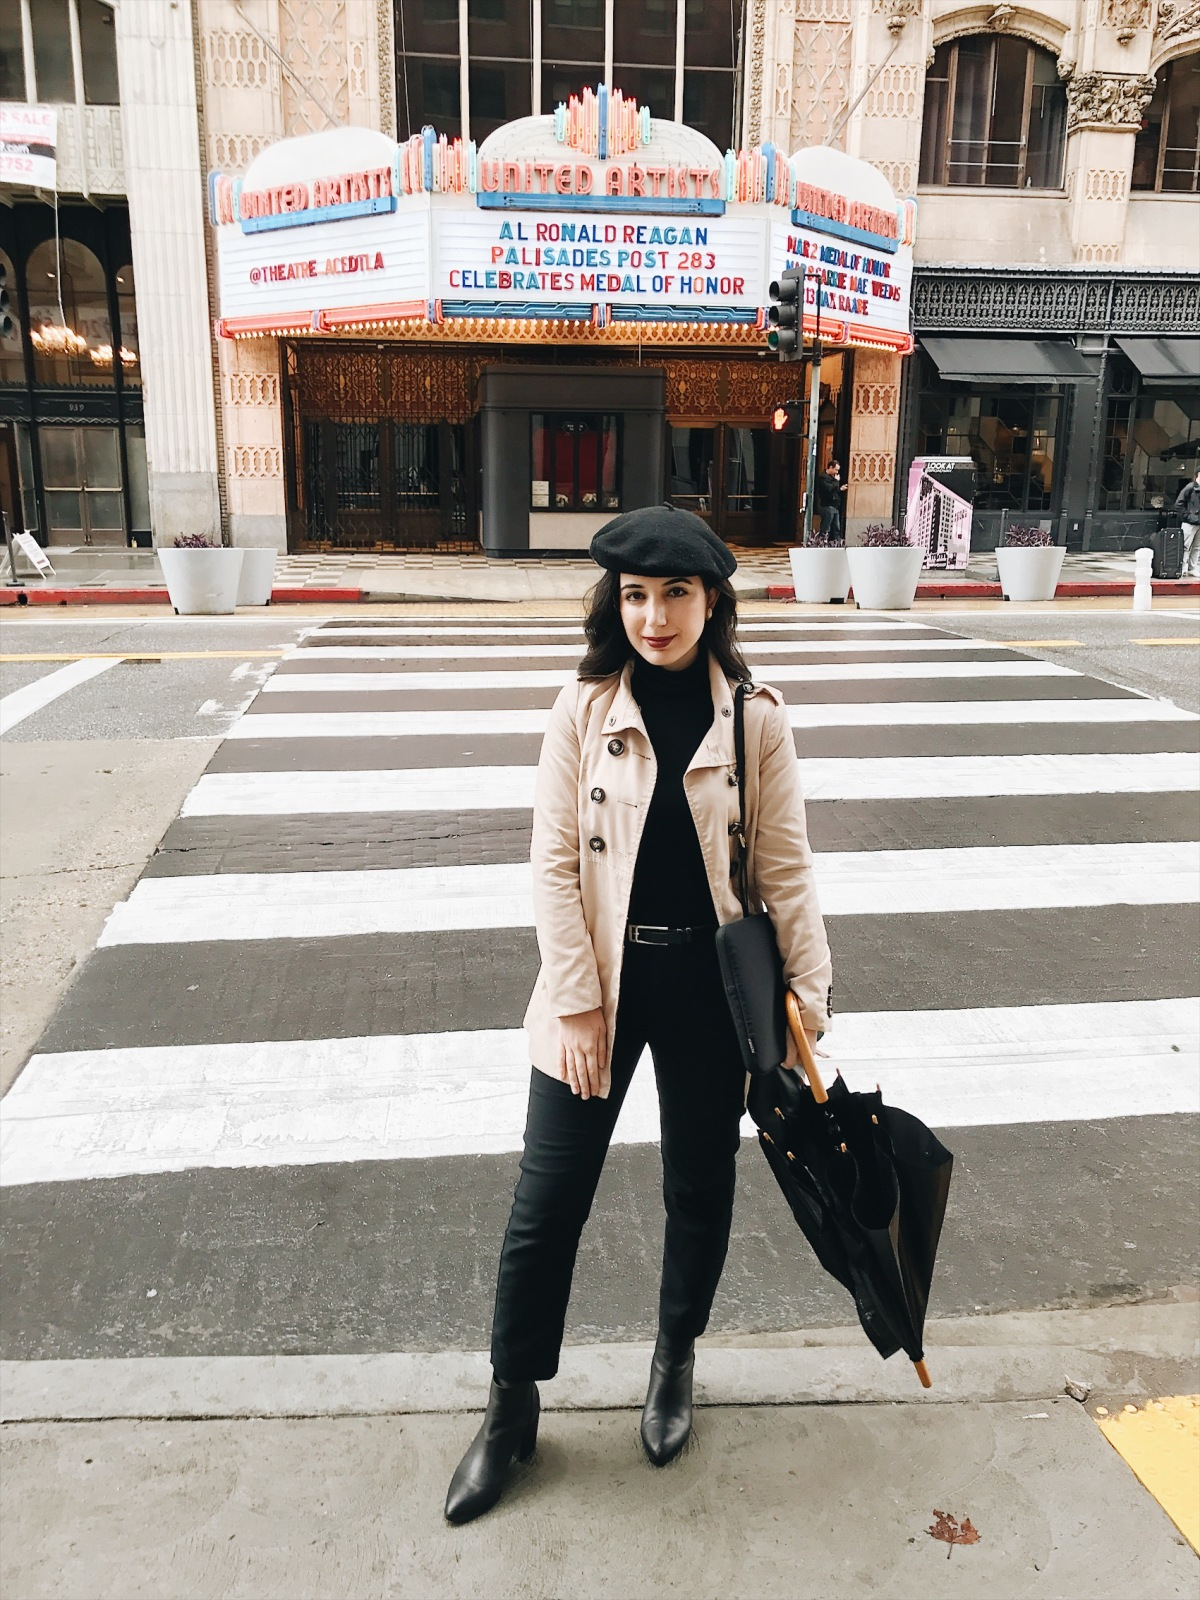 lookbook, fashion blogger, fashion, style, style blogger, travel, travel blogger, beret, outfit of the day, ootd, look of the day, French fashion, Parisian fashion, trench coat, black turtleneck, red lipstick, ankle boots, Steve Madden ankle boots, black trousers, winter style, winter fashion